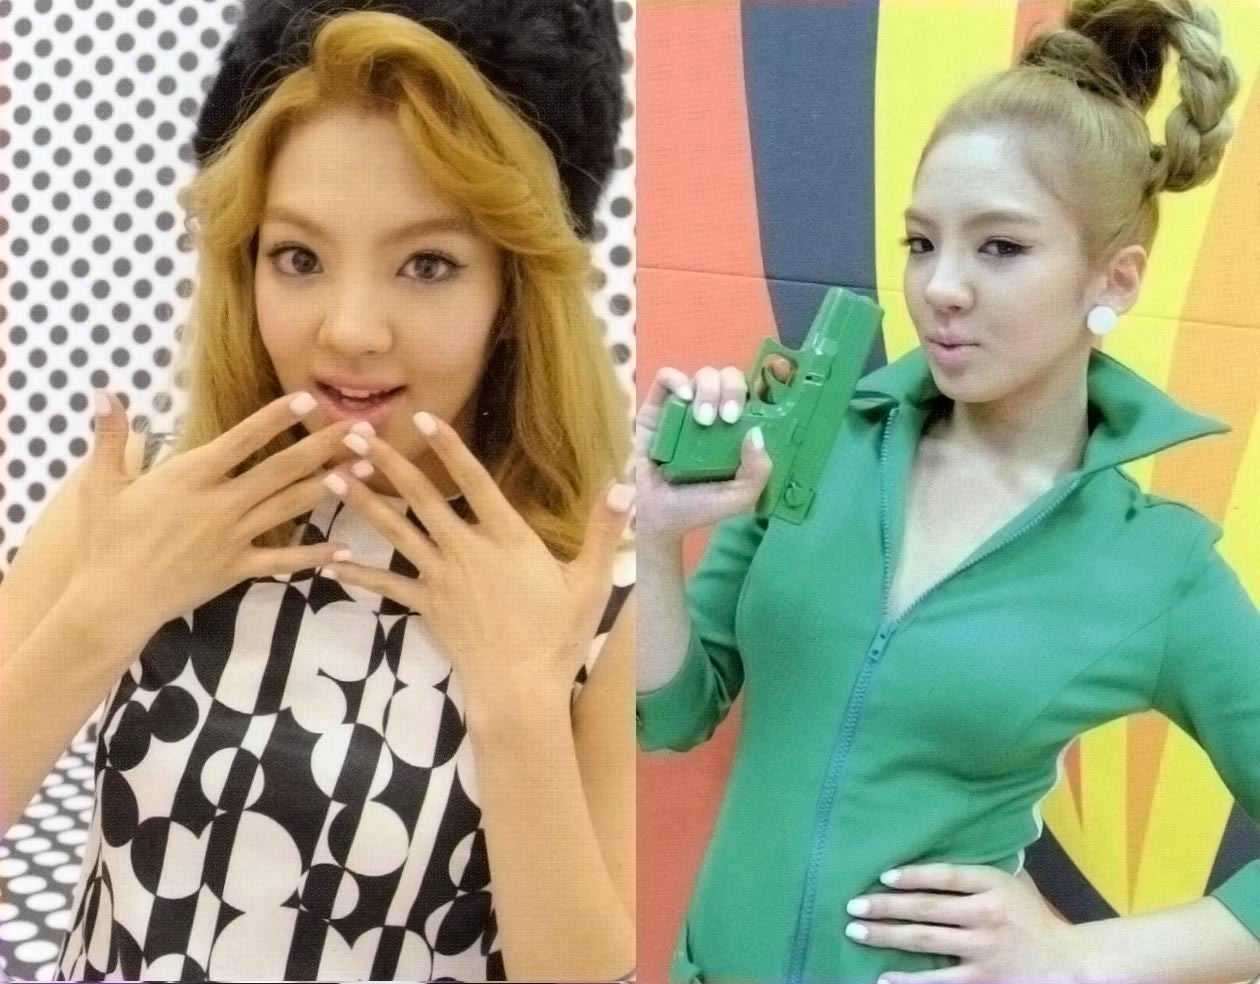 http://images4.fanpop.com/image/photos/17100000/hyoyeon-Hoot-girls-generation-snsd-17165751-1260-984.jpg